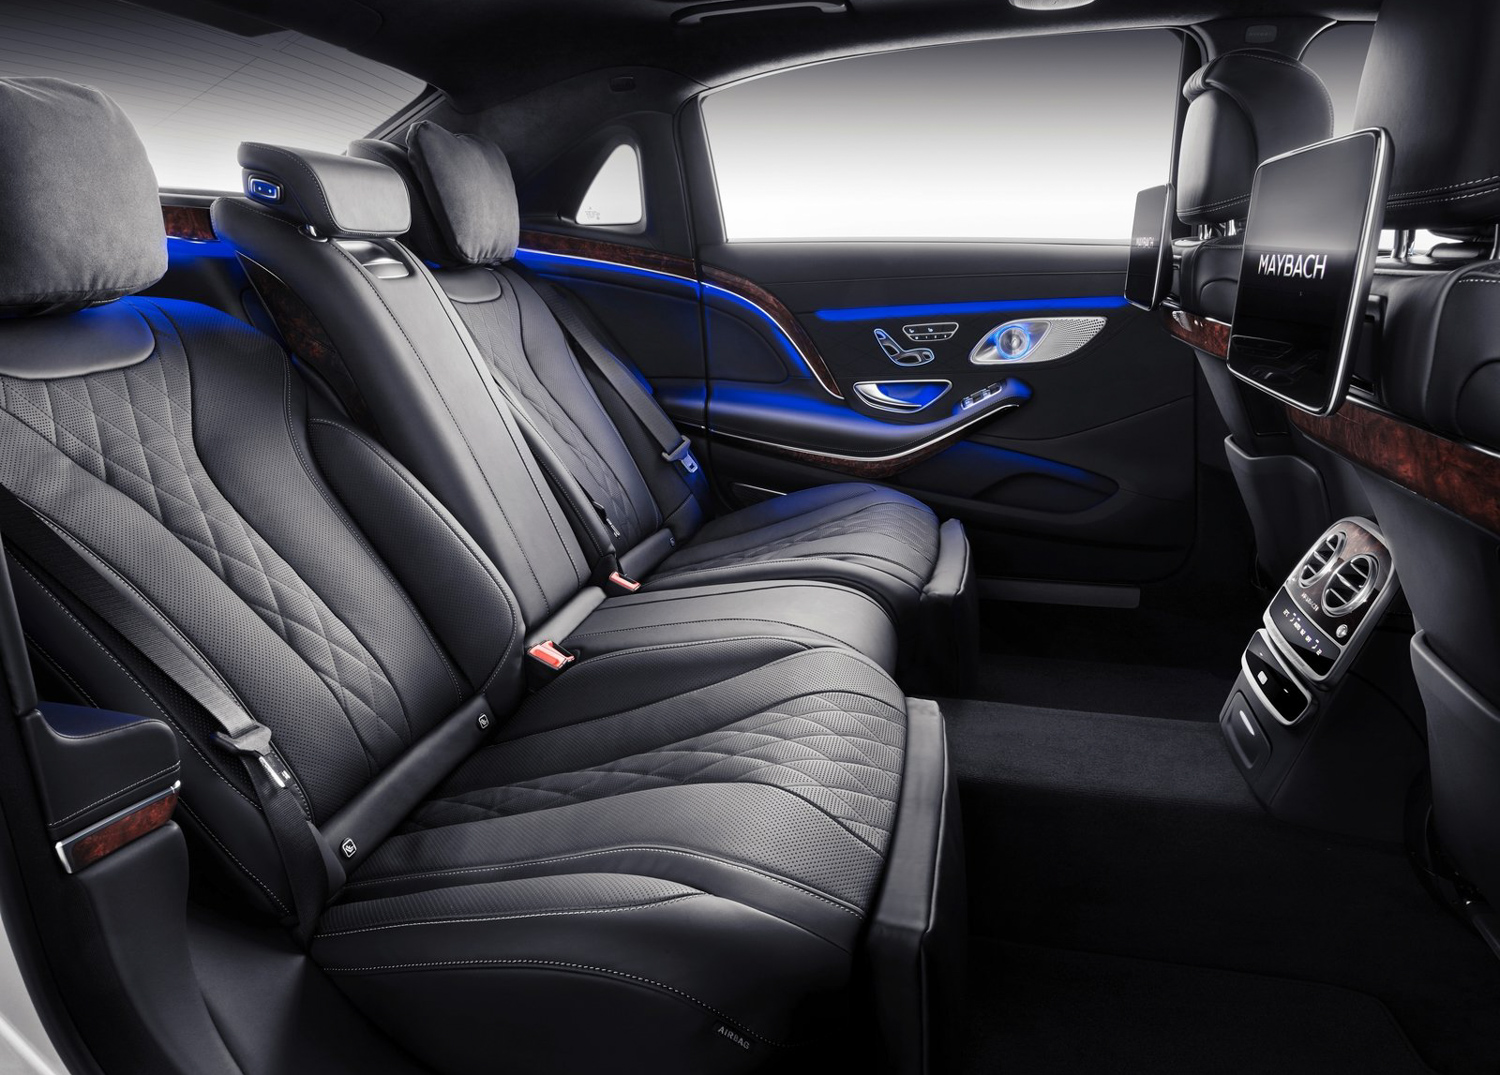 2019 Mercedes-Benz S-Class Maybach rear seat